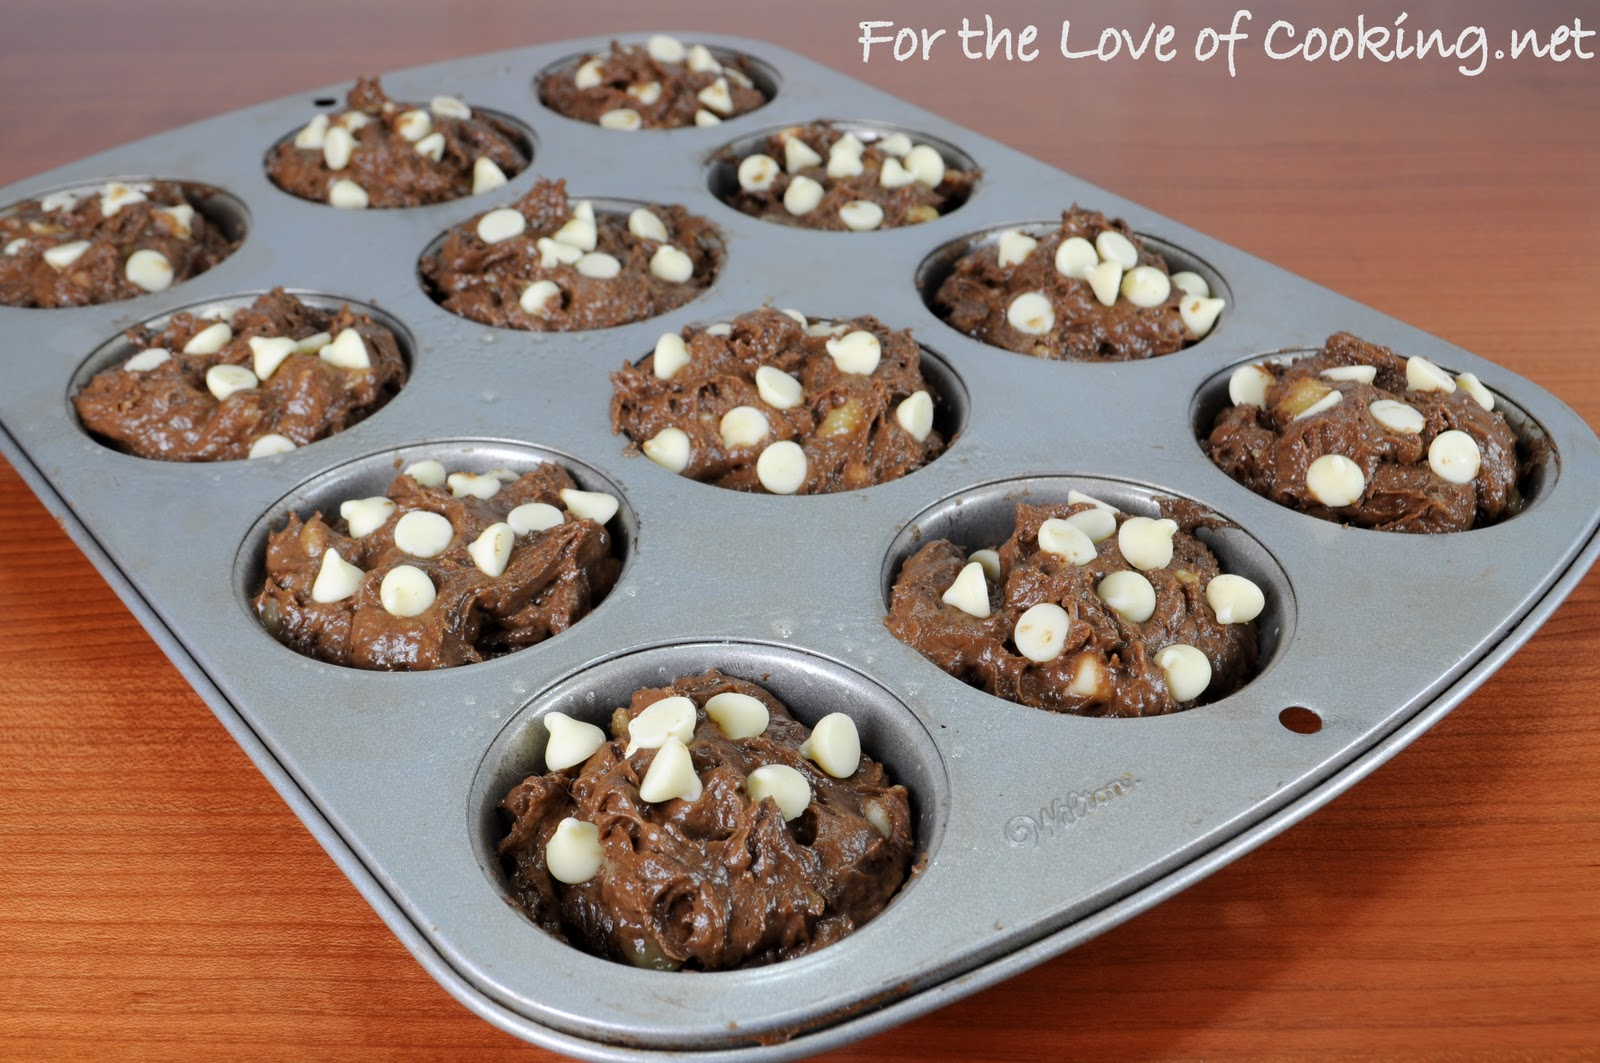 Chocolate, Banana, and White Chocolate Chip Muffins | For the Love ...